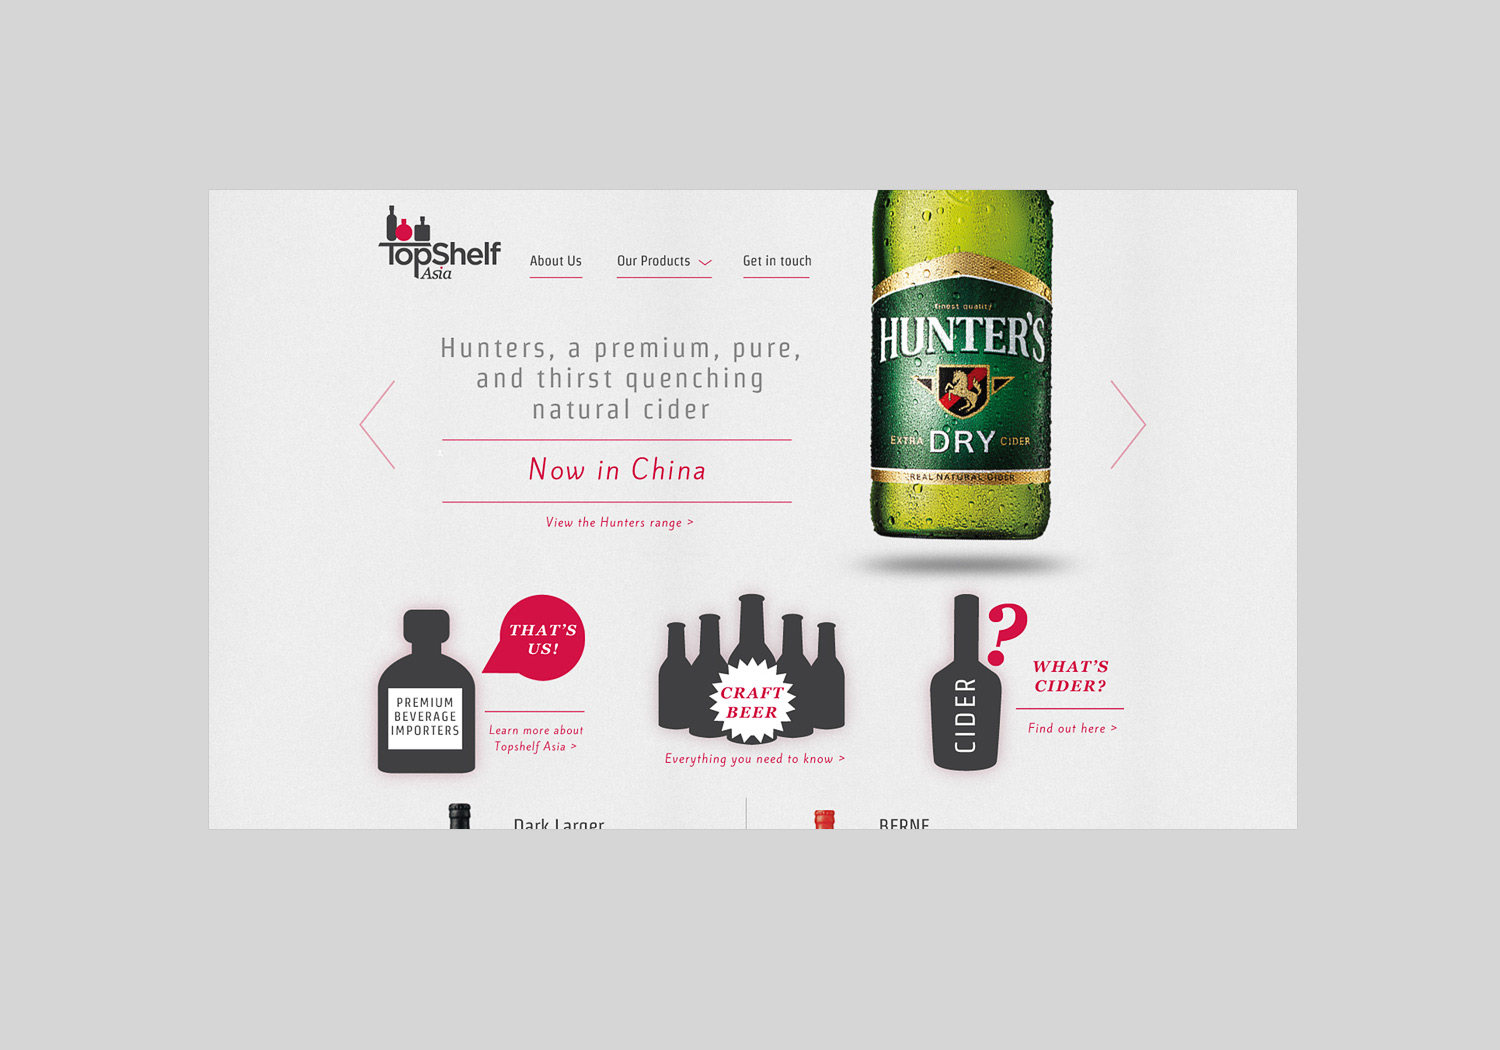 TopShelf Asia Beer Web Design